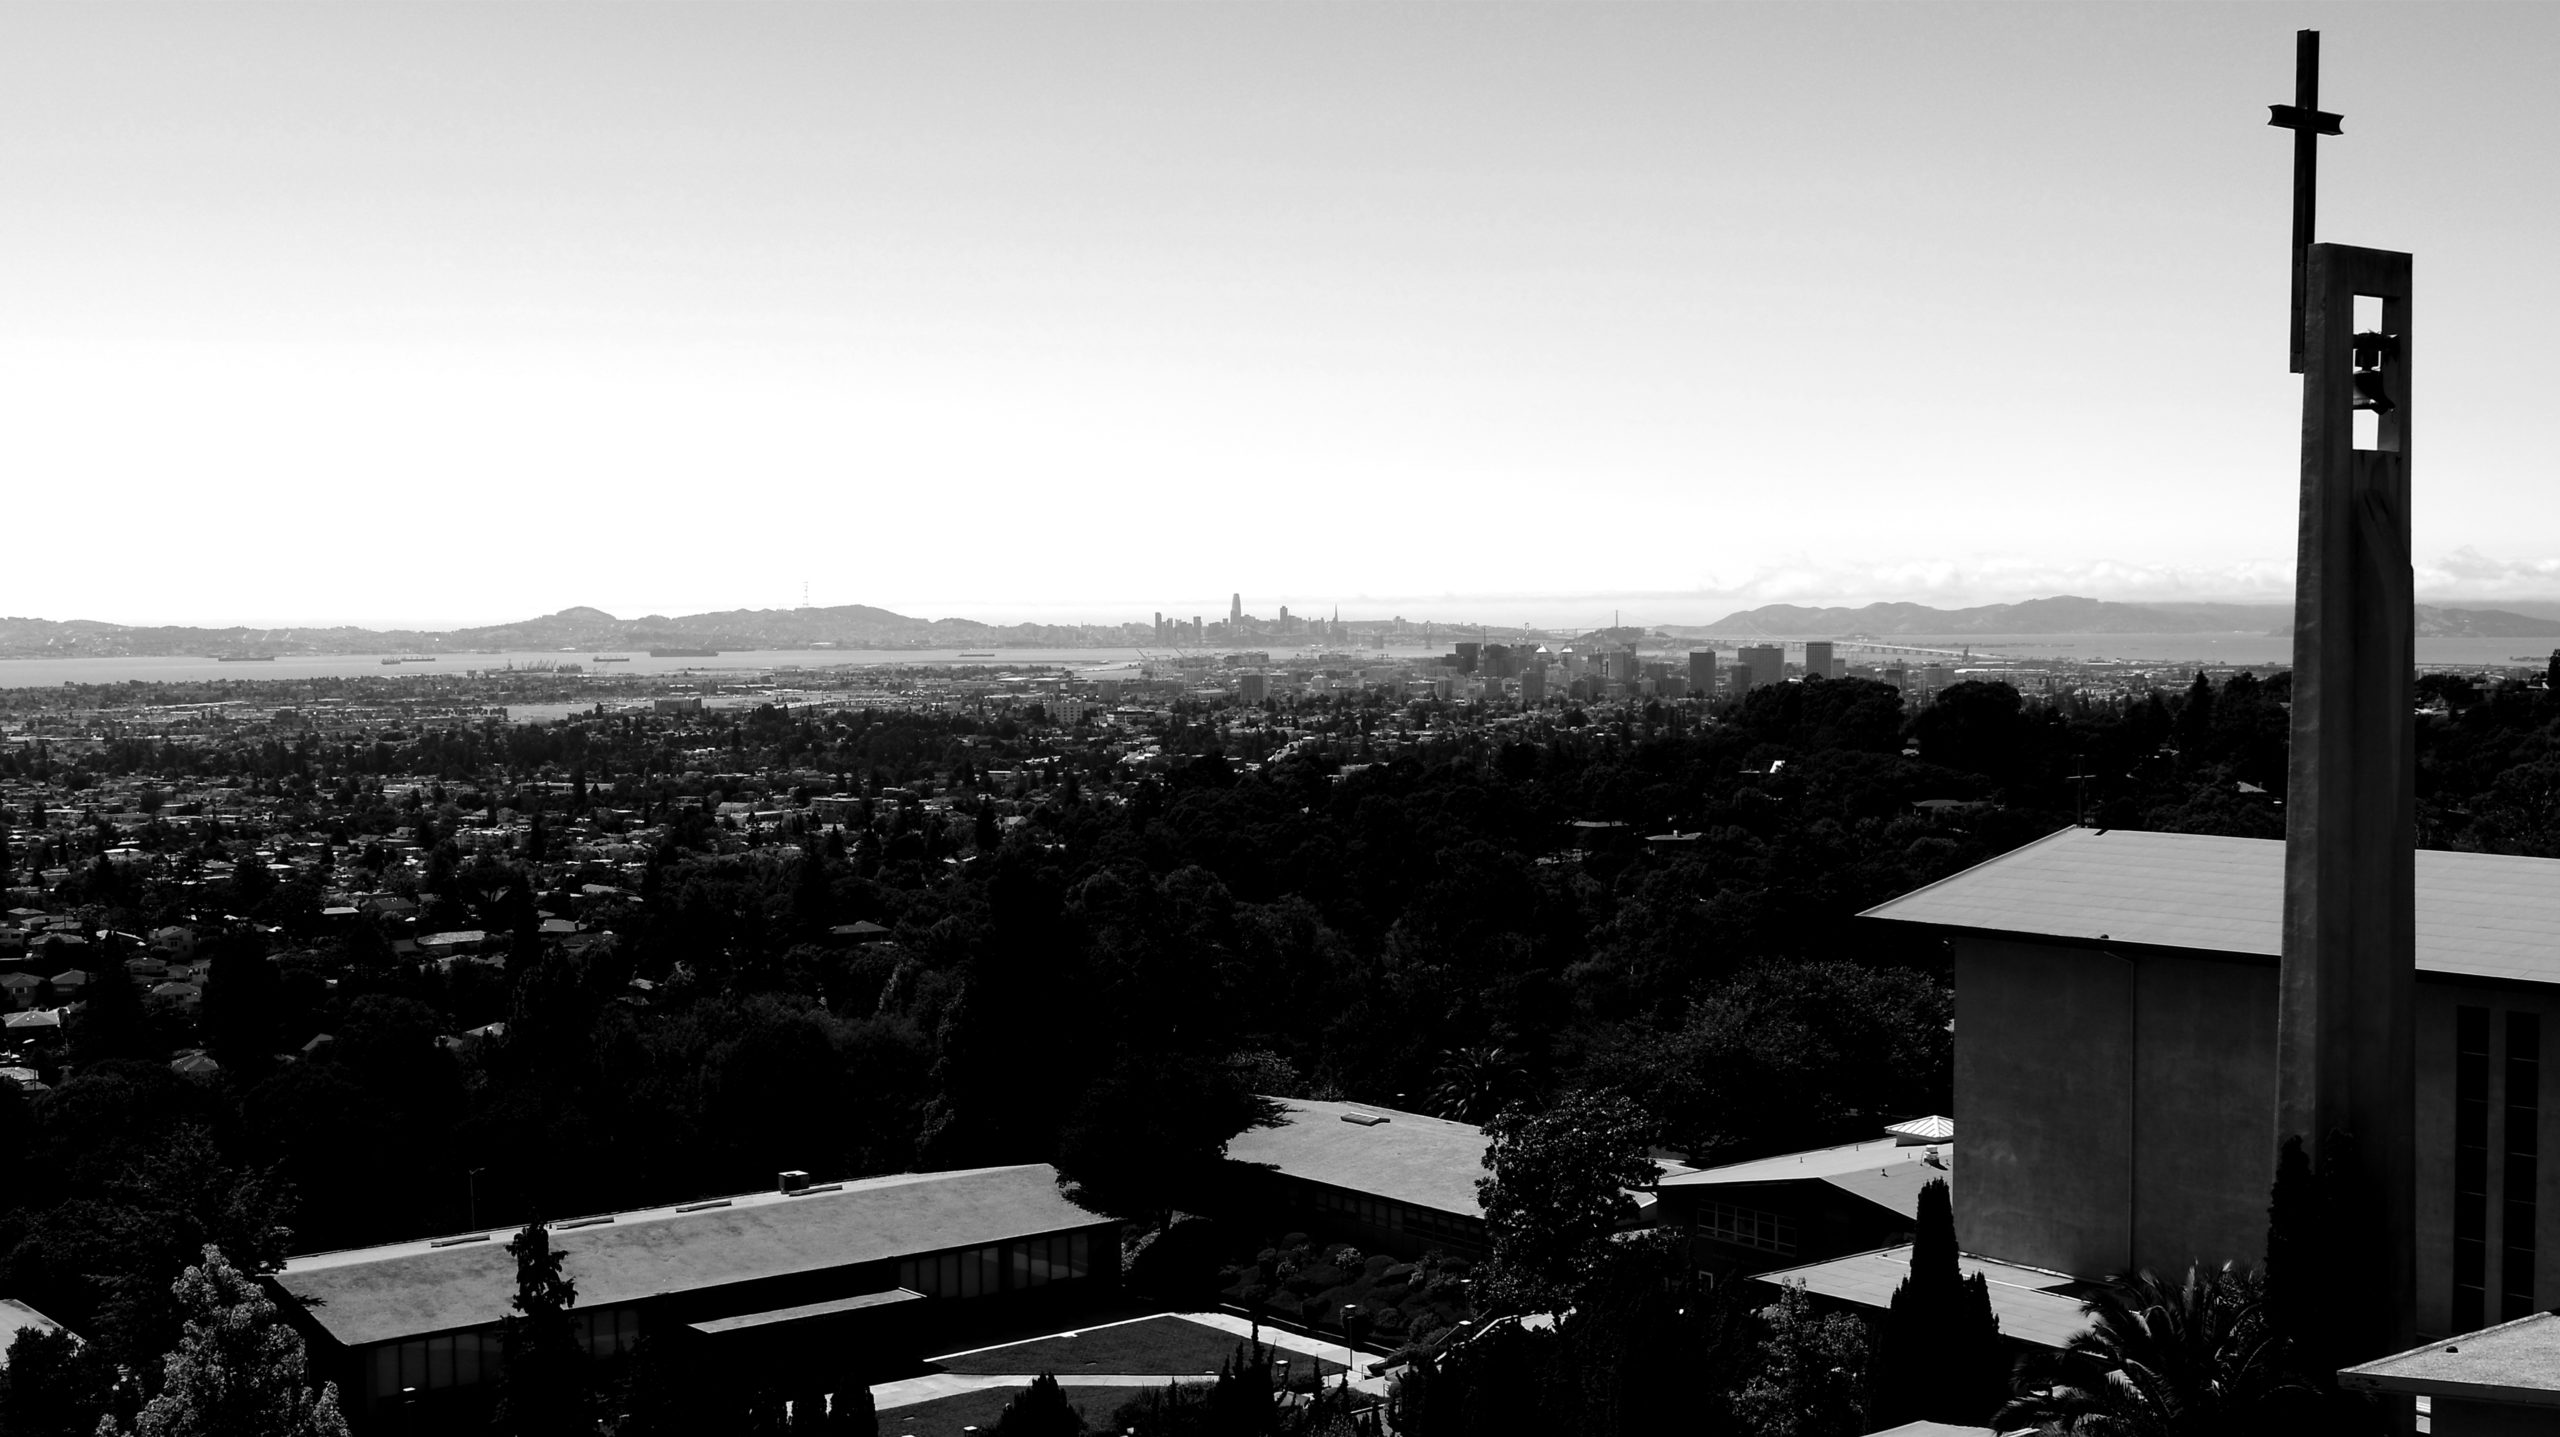 Black and white sky view of Holy Names University Campus in Oakland, California